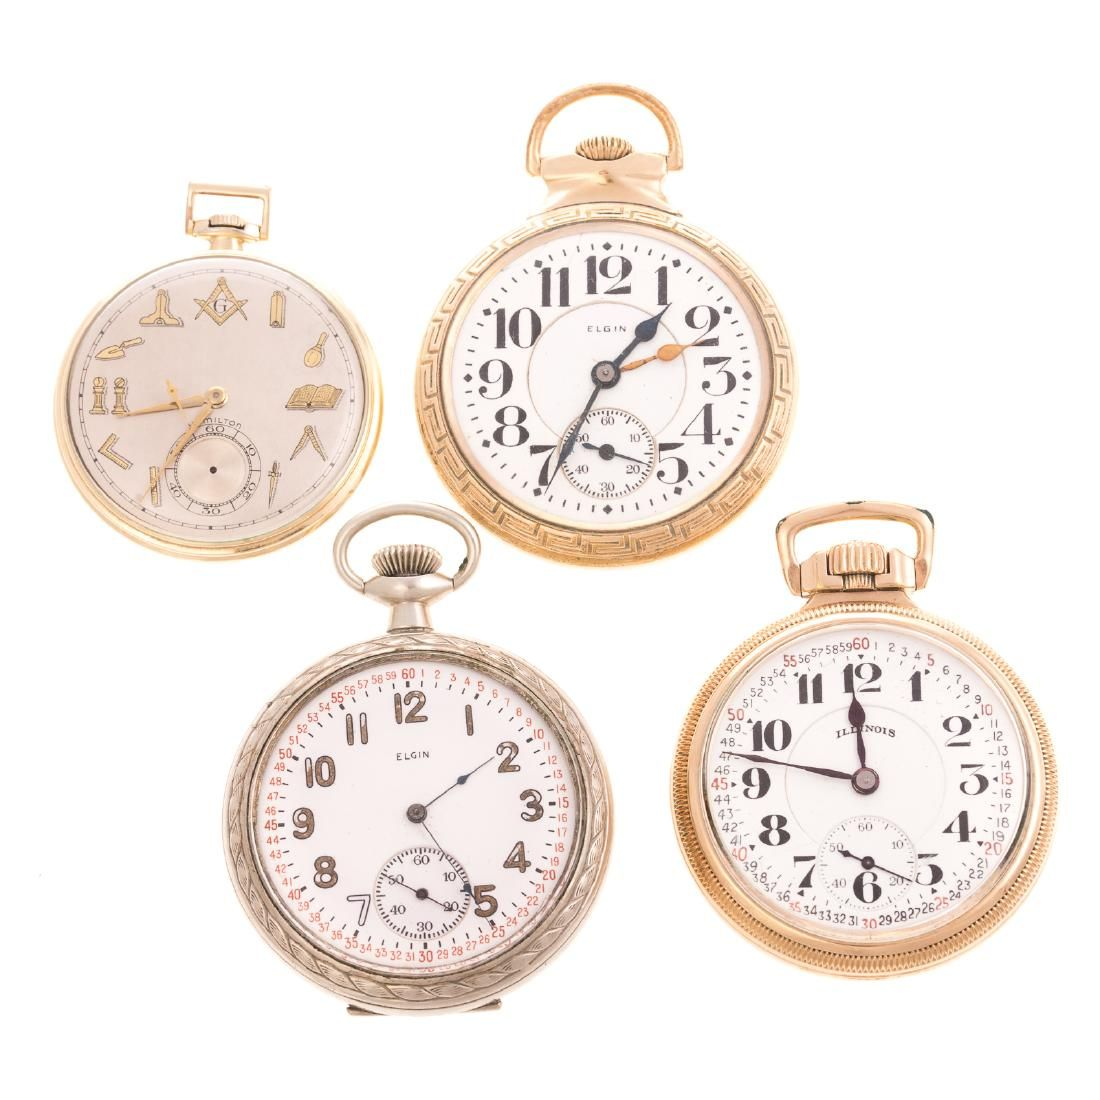 A Collection of Gentlemen's Pocket Watches